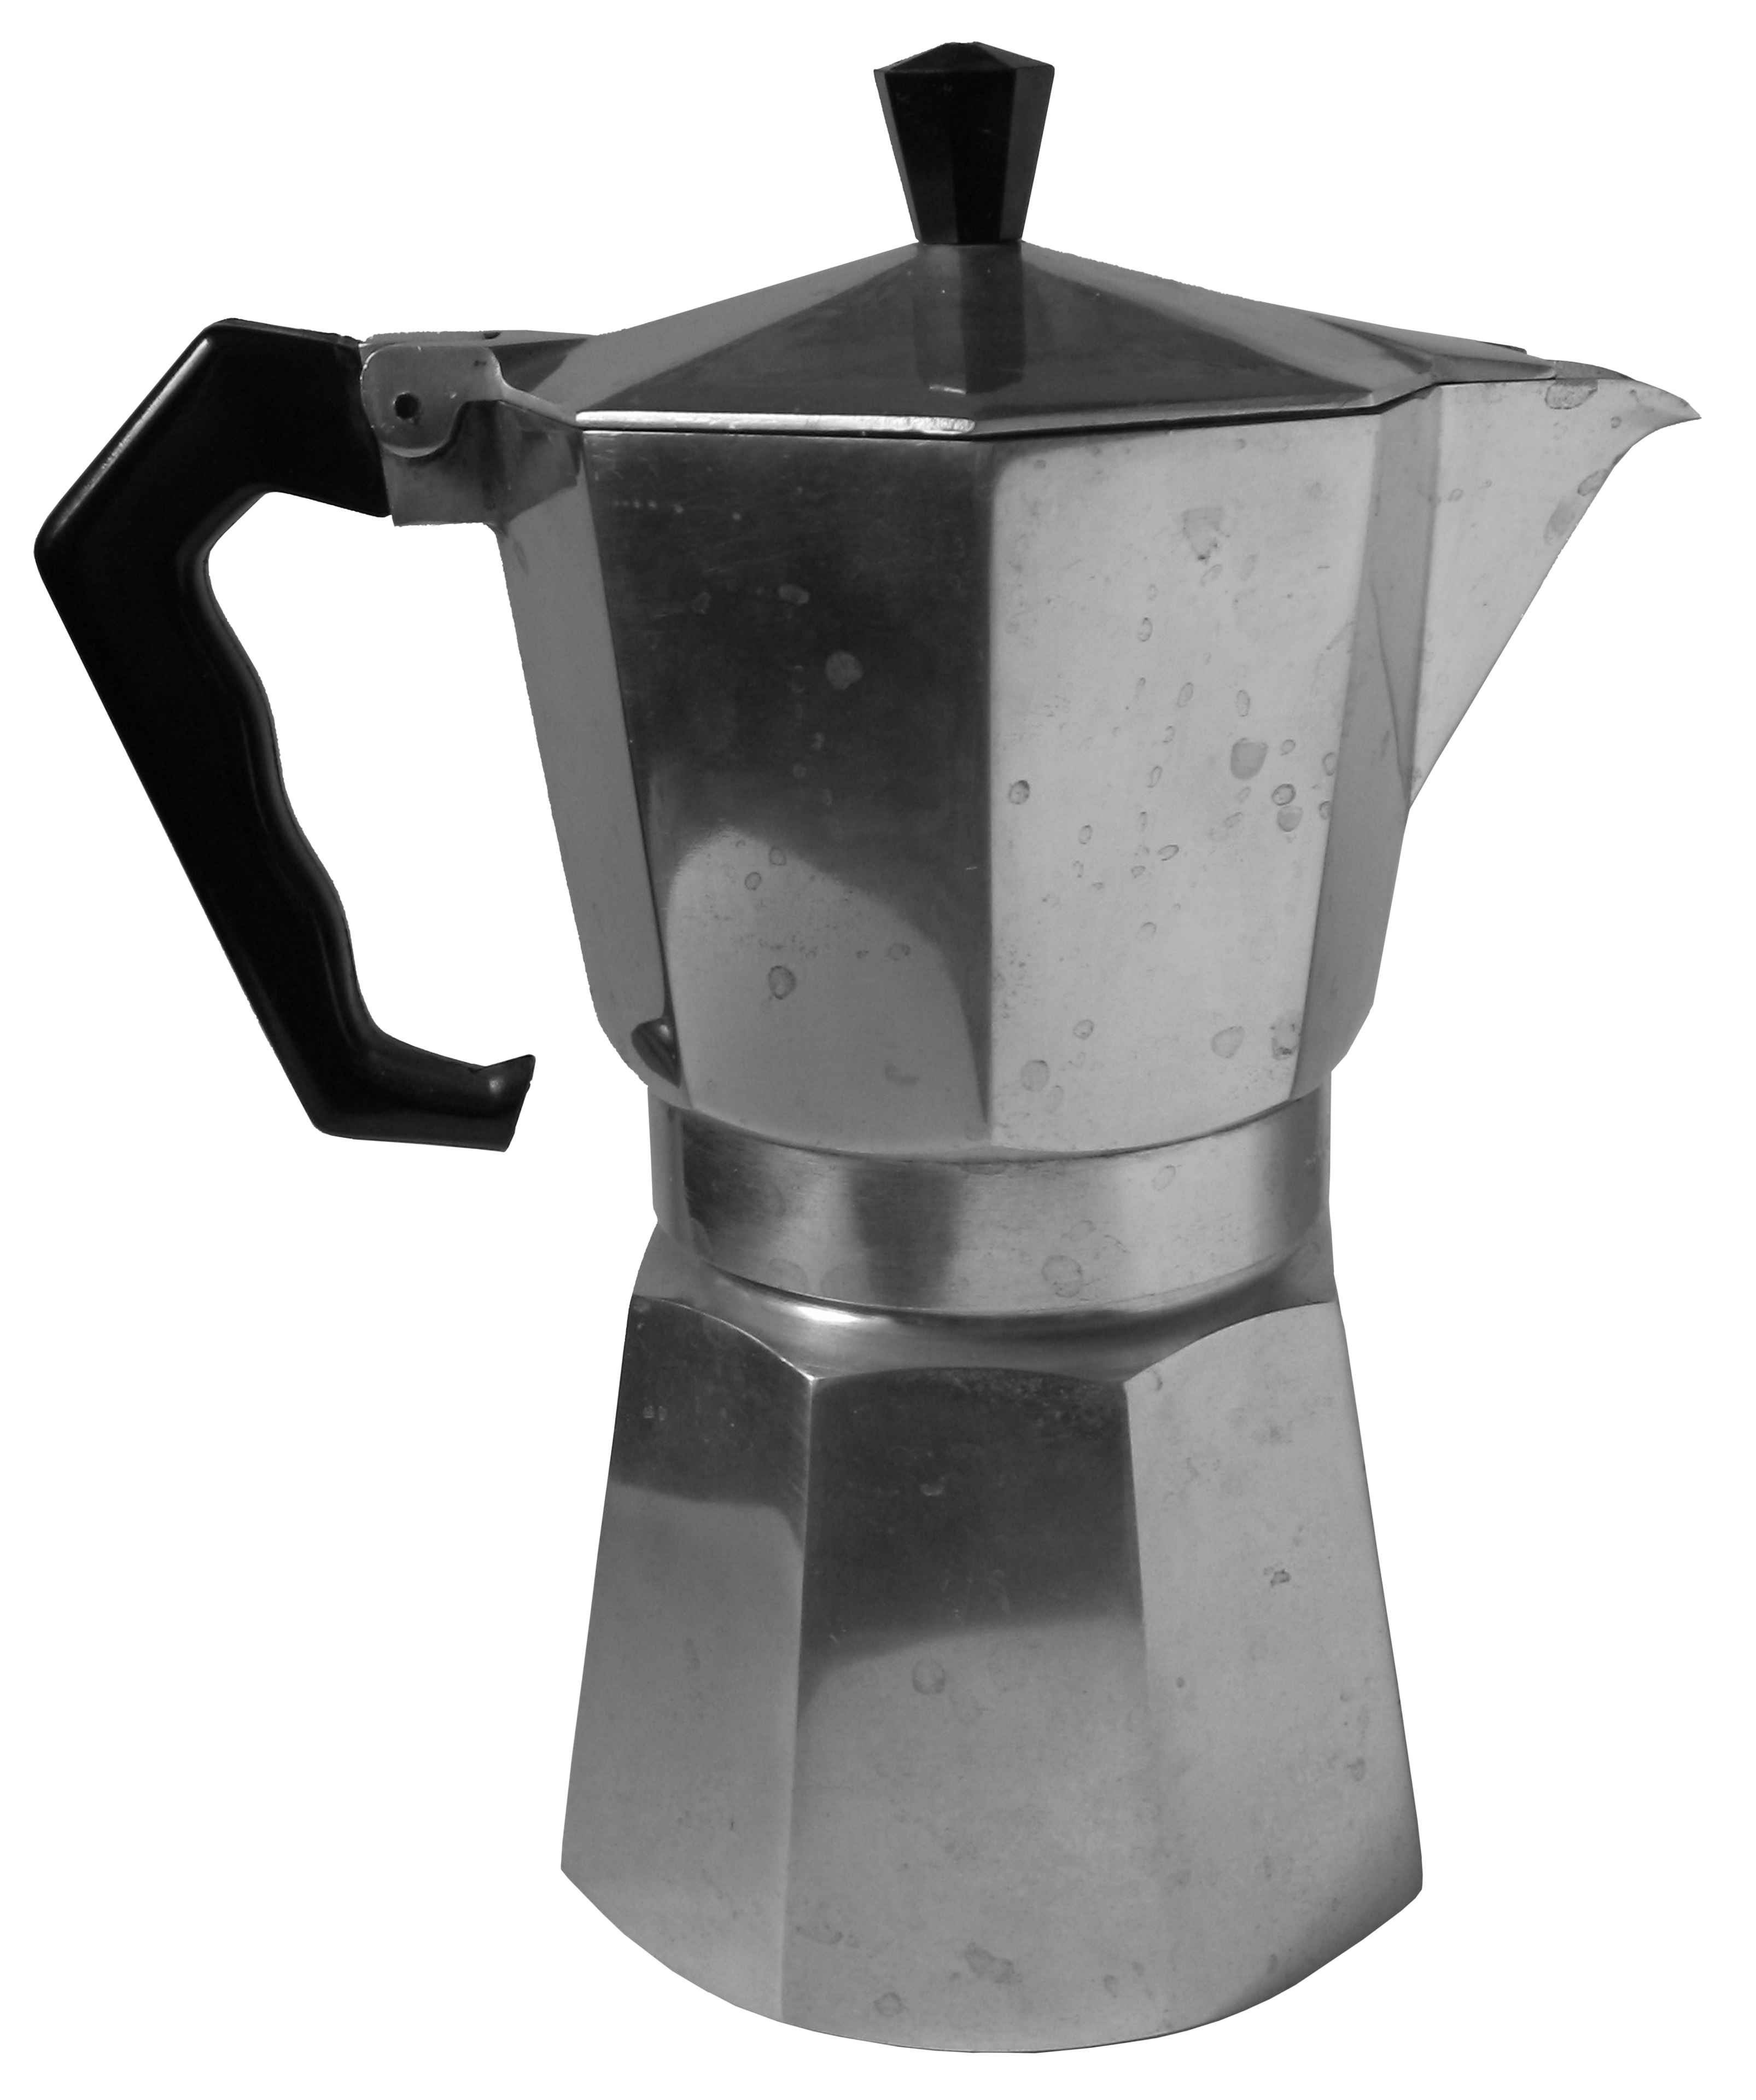 Best Coffee Maker Stovetop